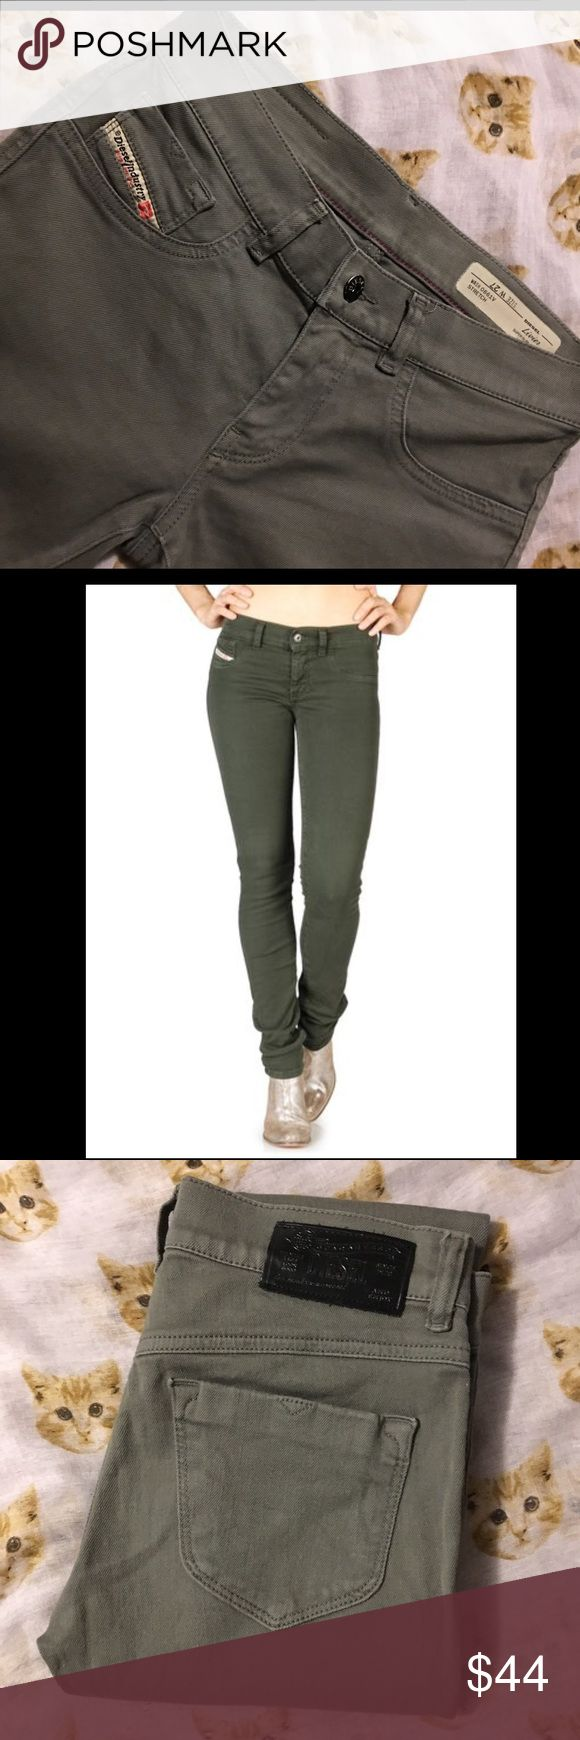 DIESEL 'LIVIER' SUPER SLIM LEGGINGS JEAN SZ 27 NWOT DIESEL 'LIVIER' SUPER SLIM JEGGING IN A SIZE 27 WITH NO FLAWS OR DEFECTS. WASH 0661V STRETCH (OLIVE COLOR) Questions, please ask! Thank you for looking.:) Diesel Jeans Skinny